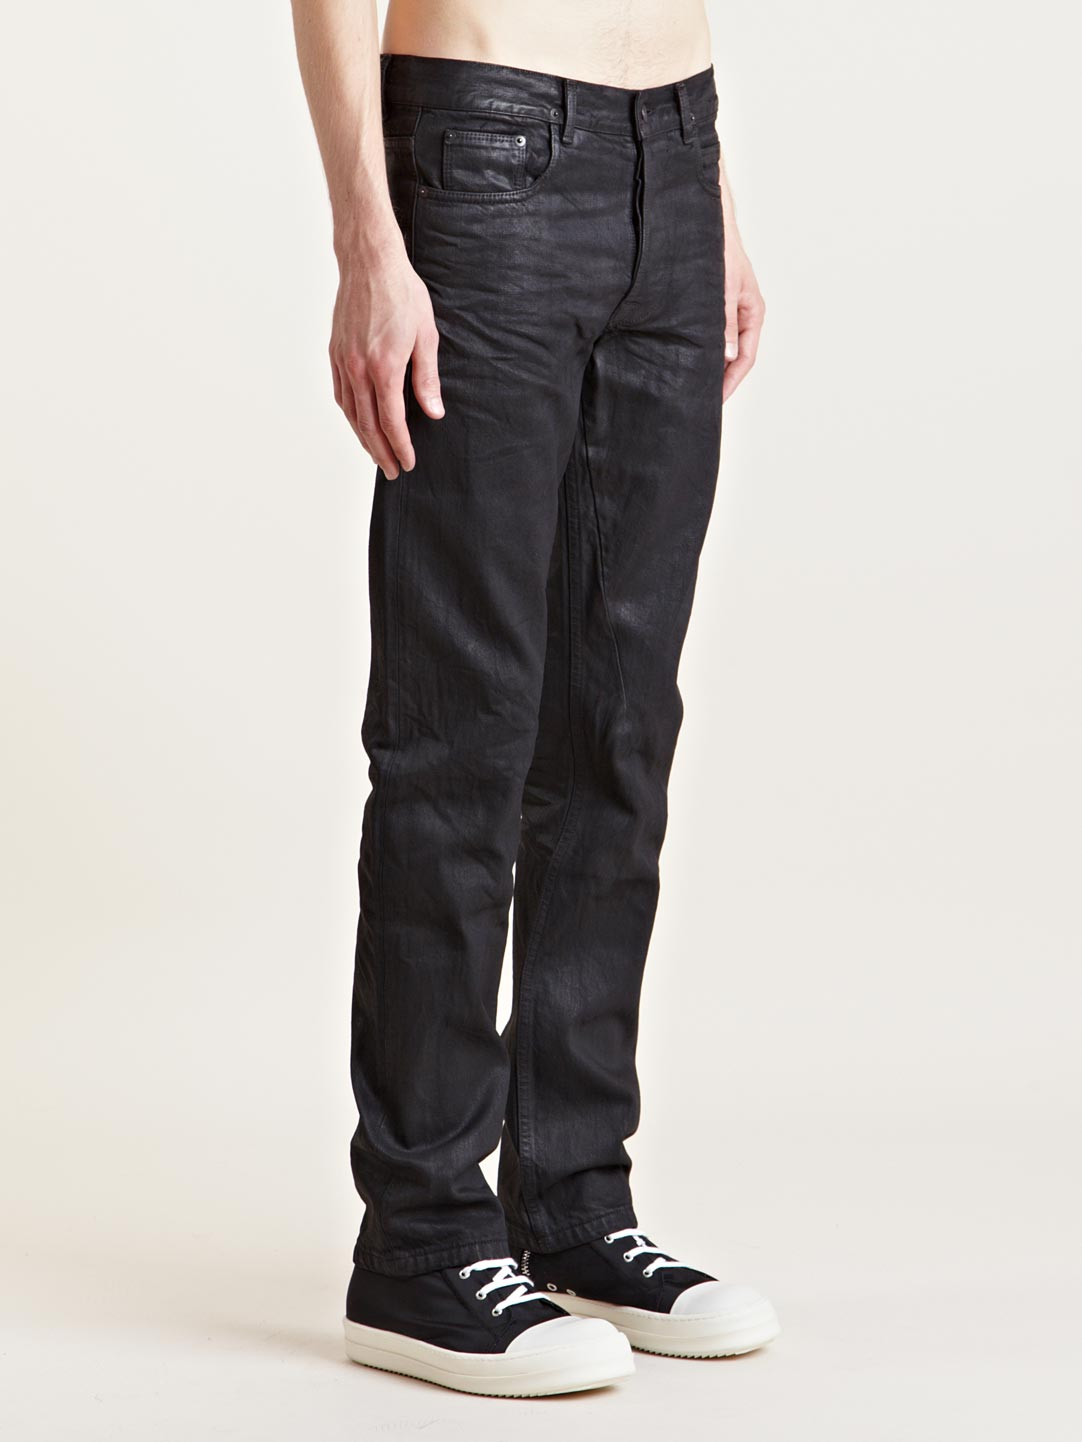 Mens Super Skinny Black Jeans